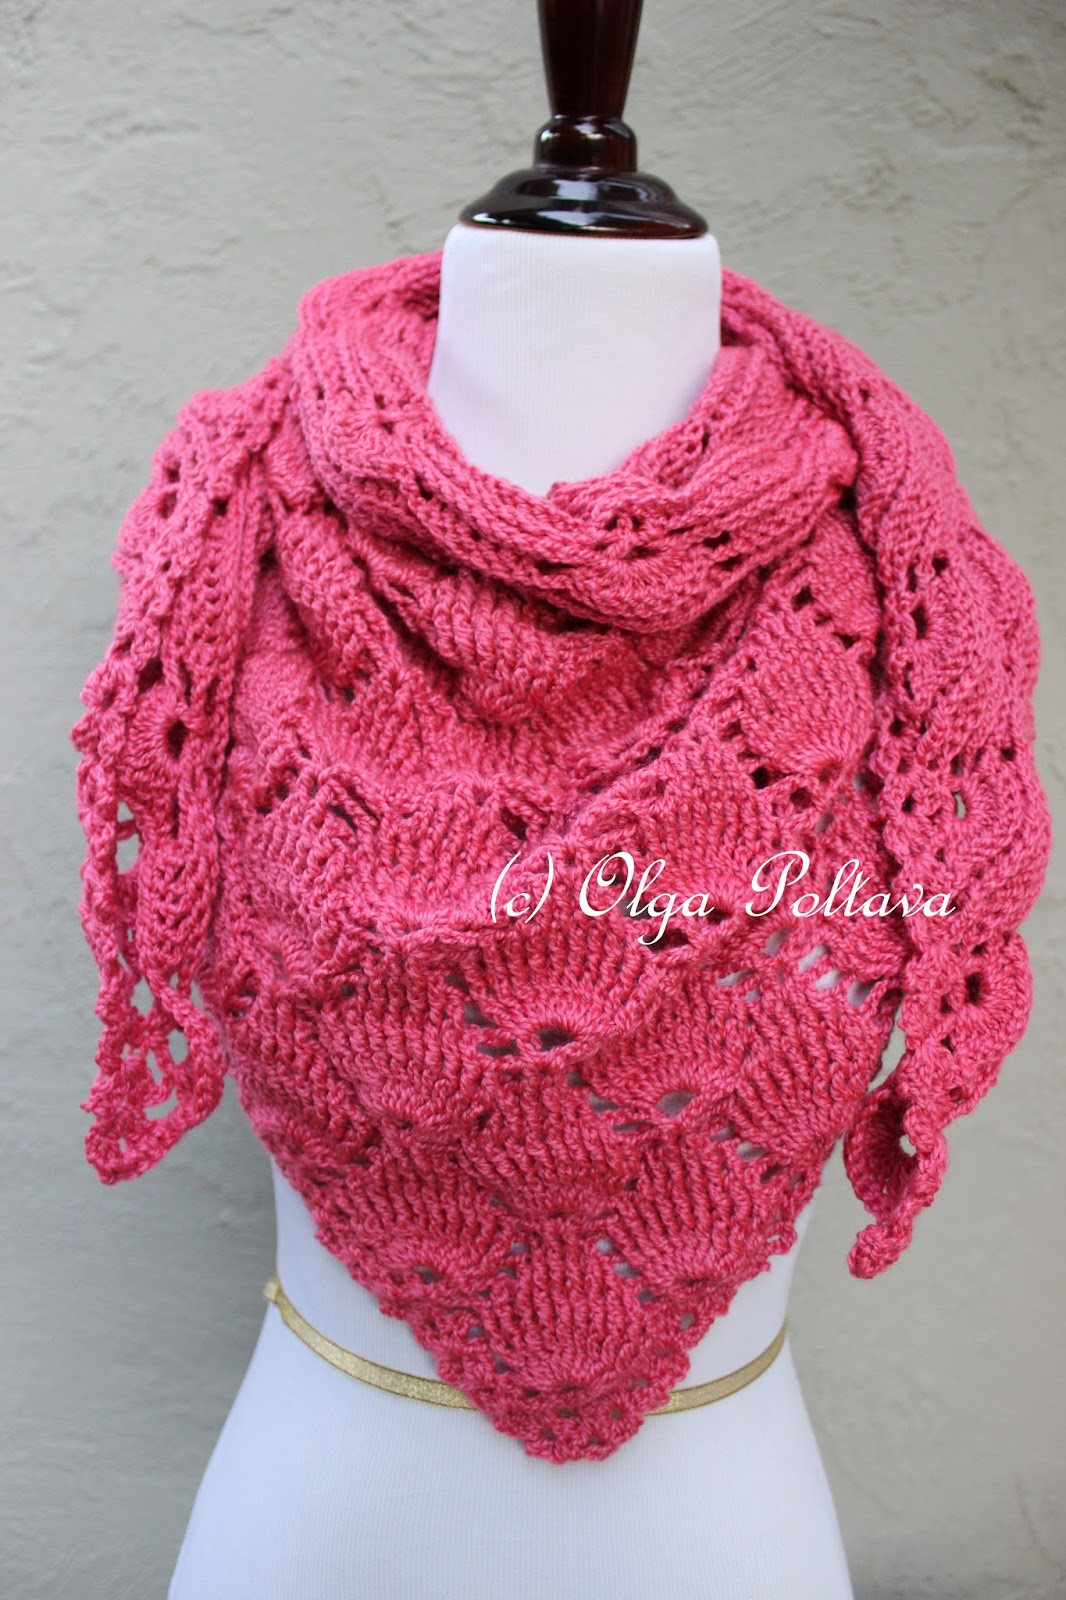 Crochet Scarf Pattern Q Hook : Lacy Crochet: Bright Pink Shells Crochet Scarf